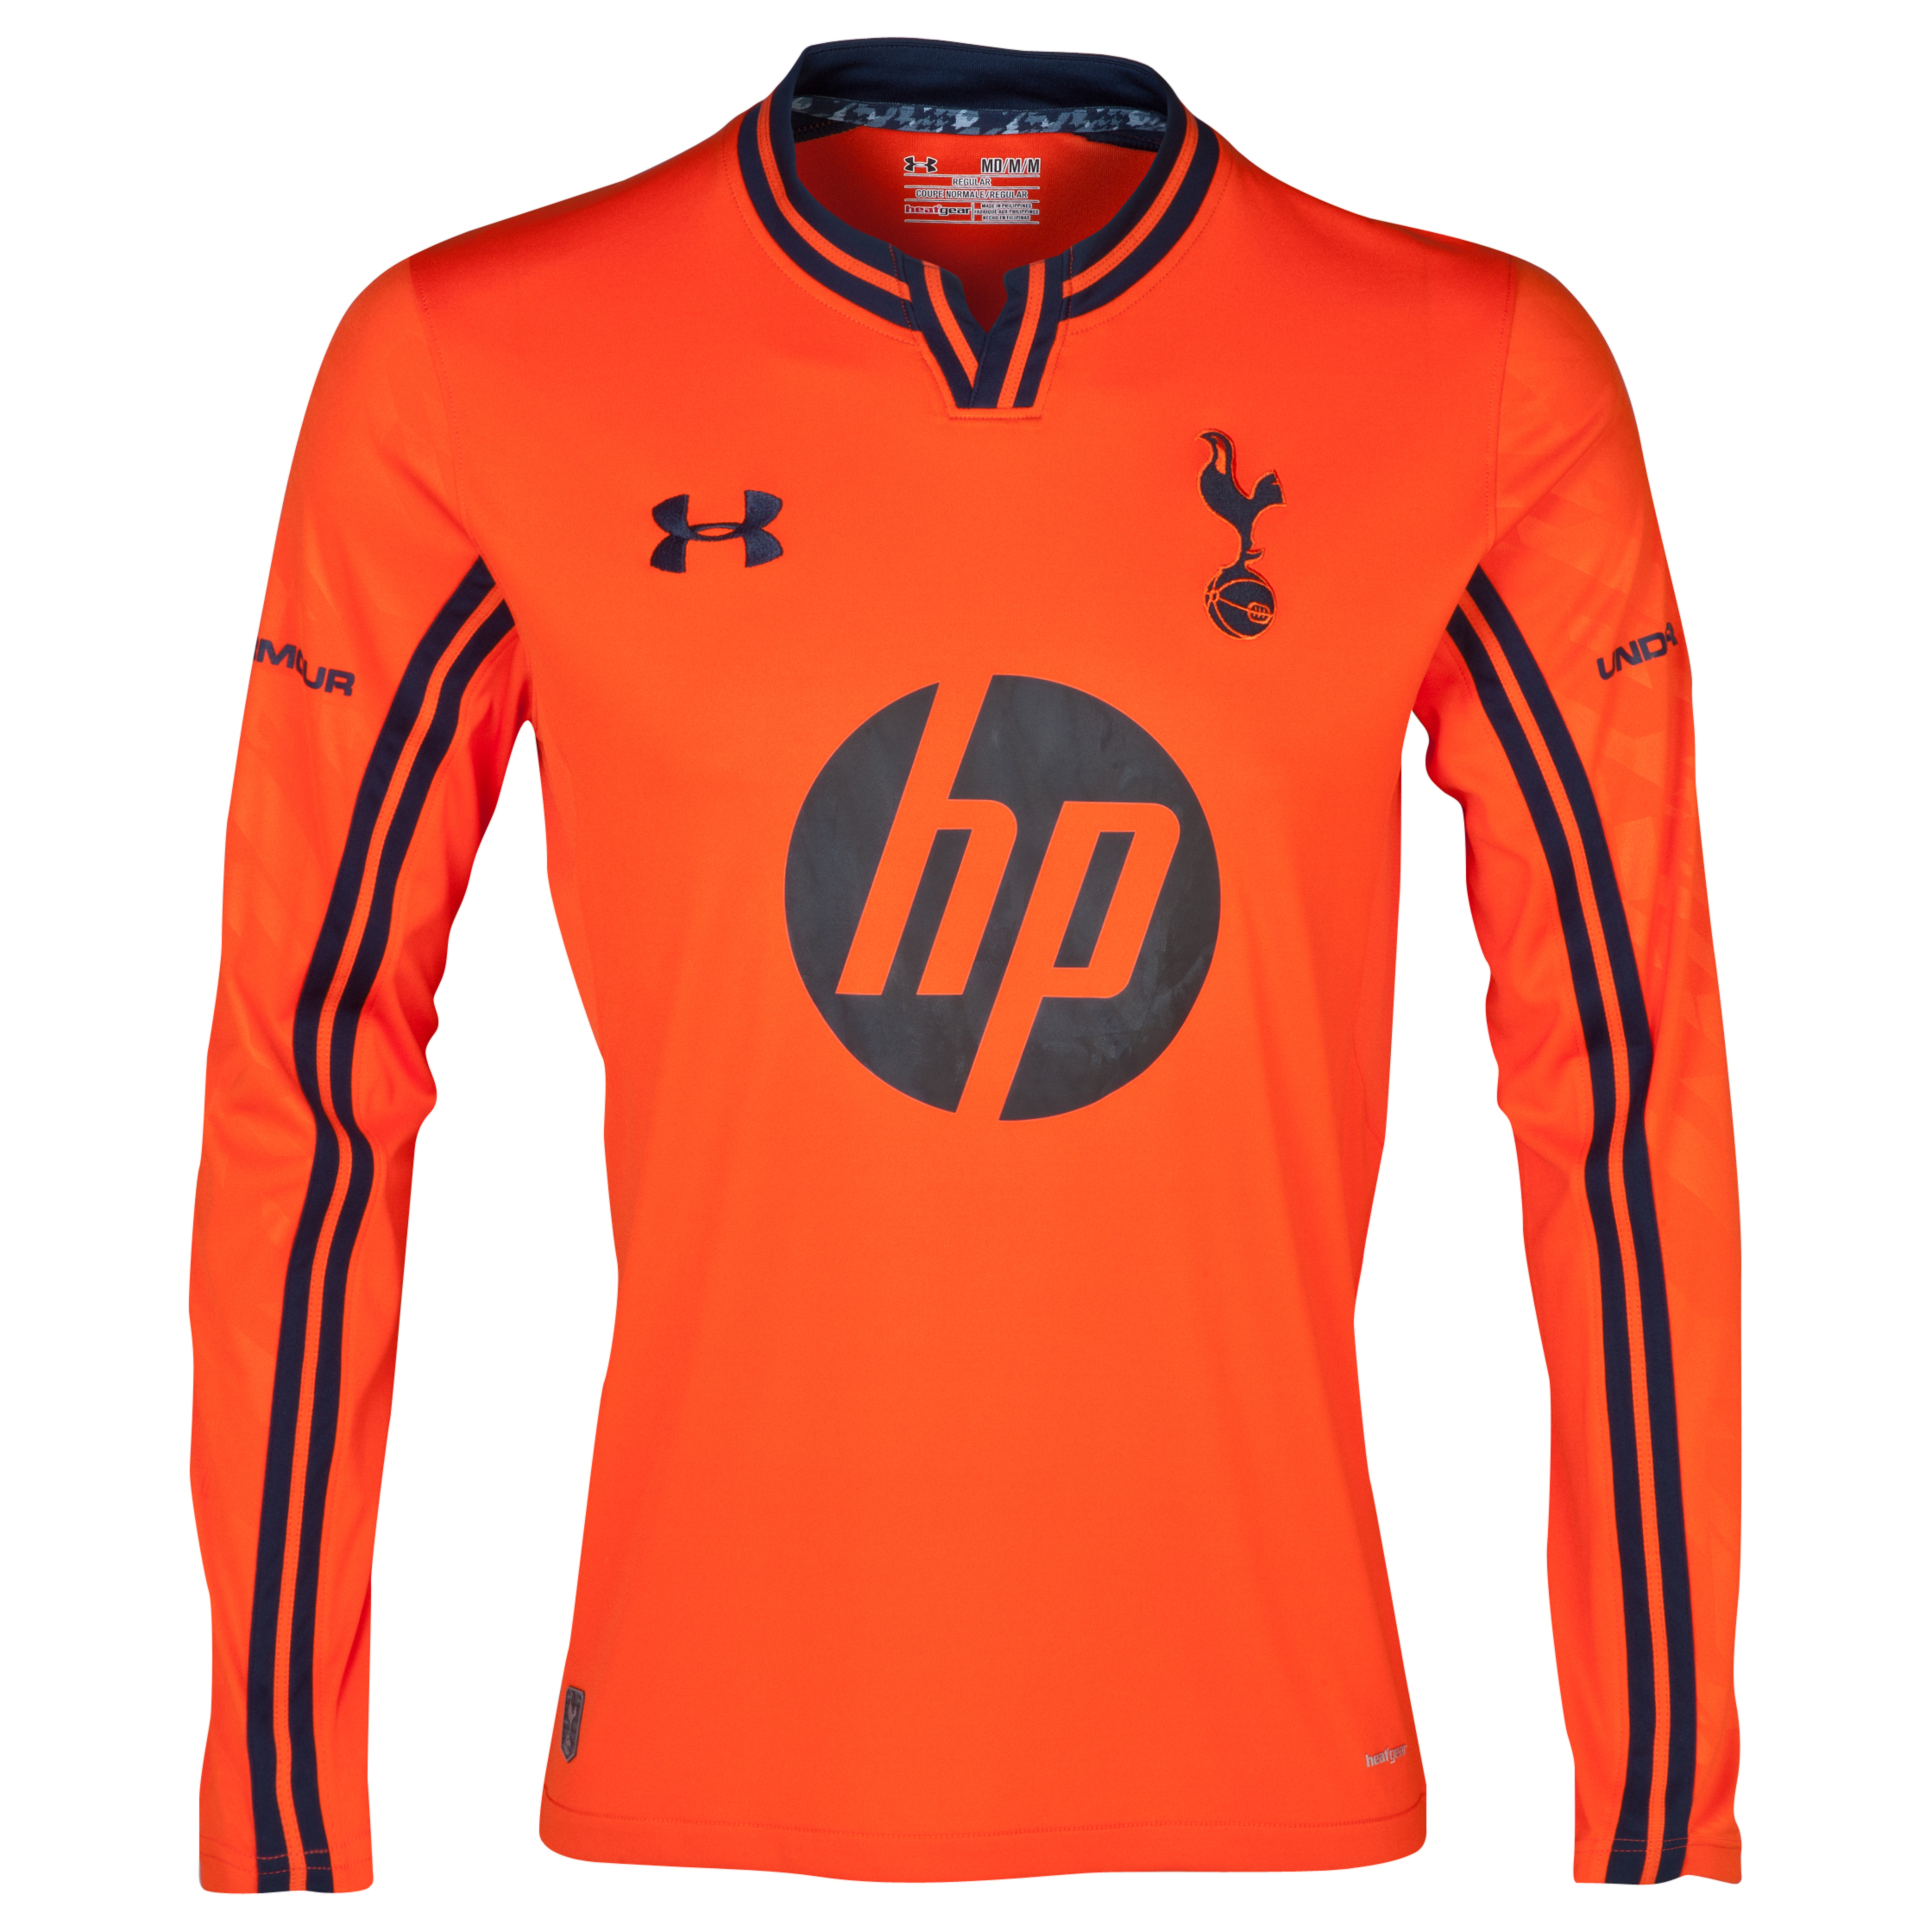 Tottenham Hotspur Home Goalkeeper Shirt 2013/14 - Youths